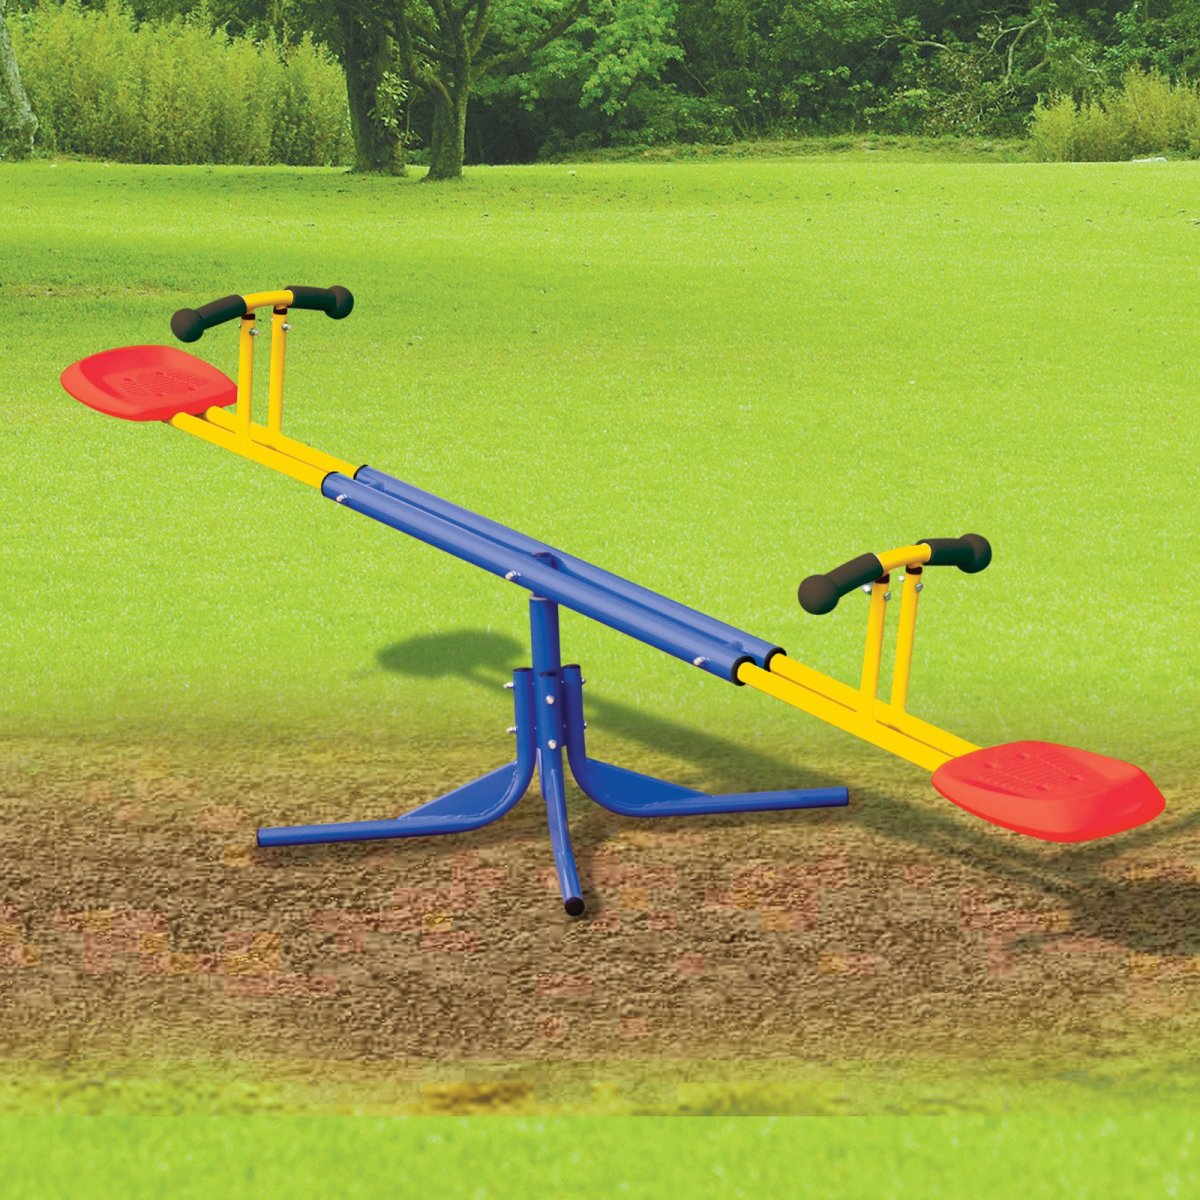 Time to ride the seesaw and see where it goes.